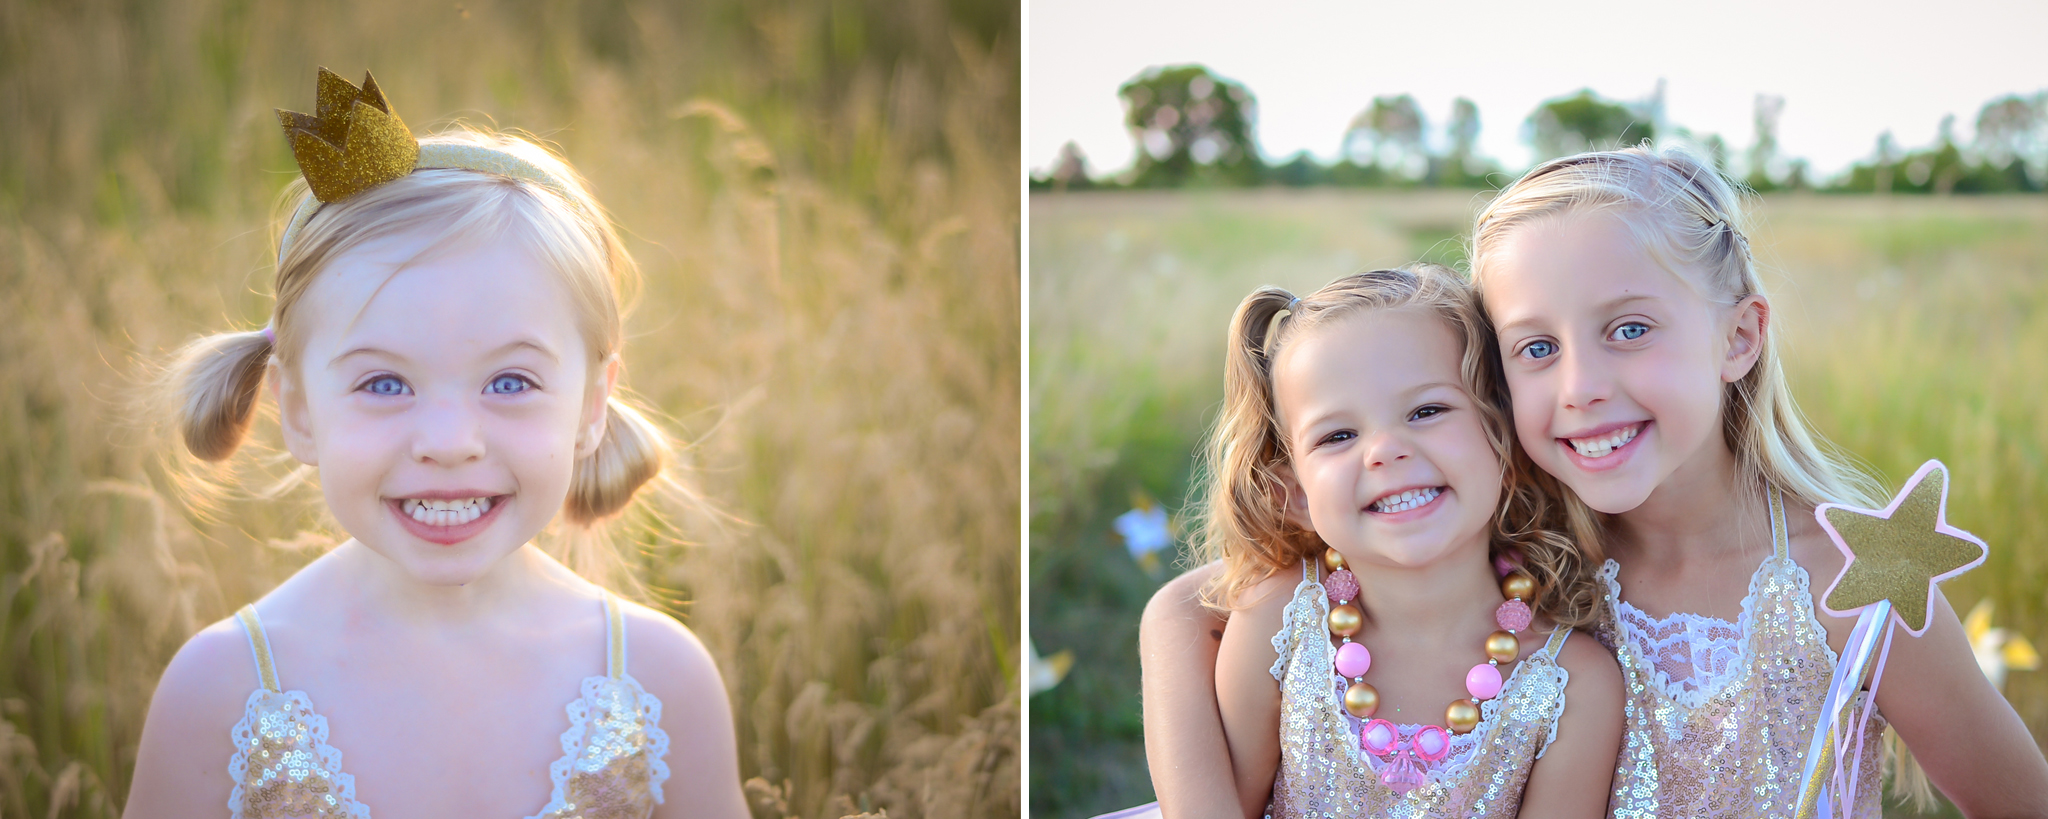 glitter princess mini session